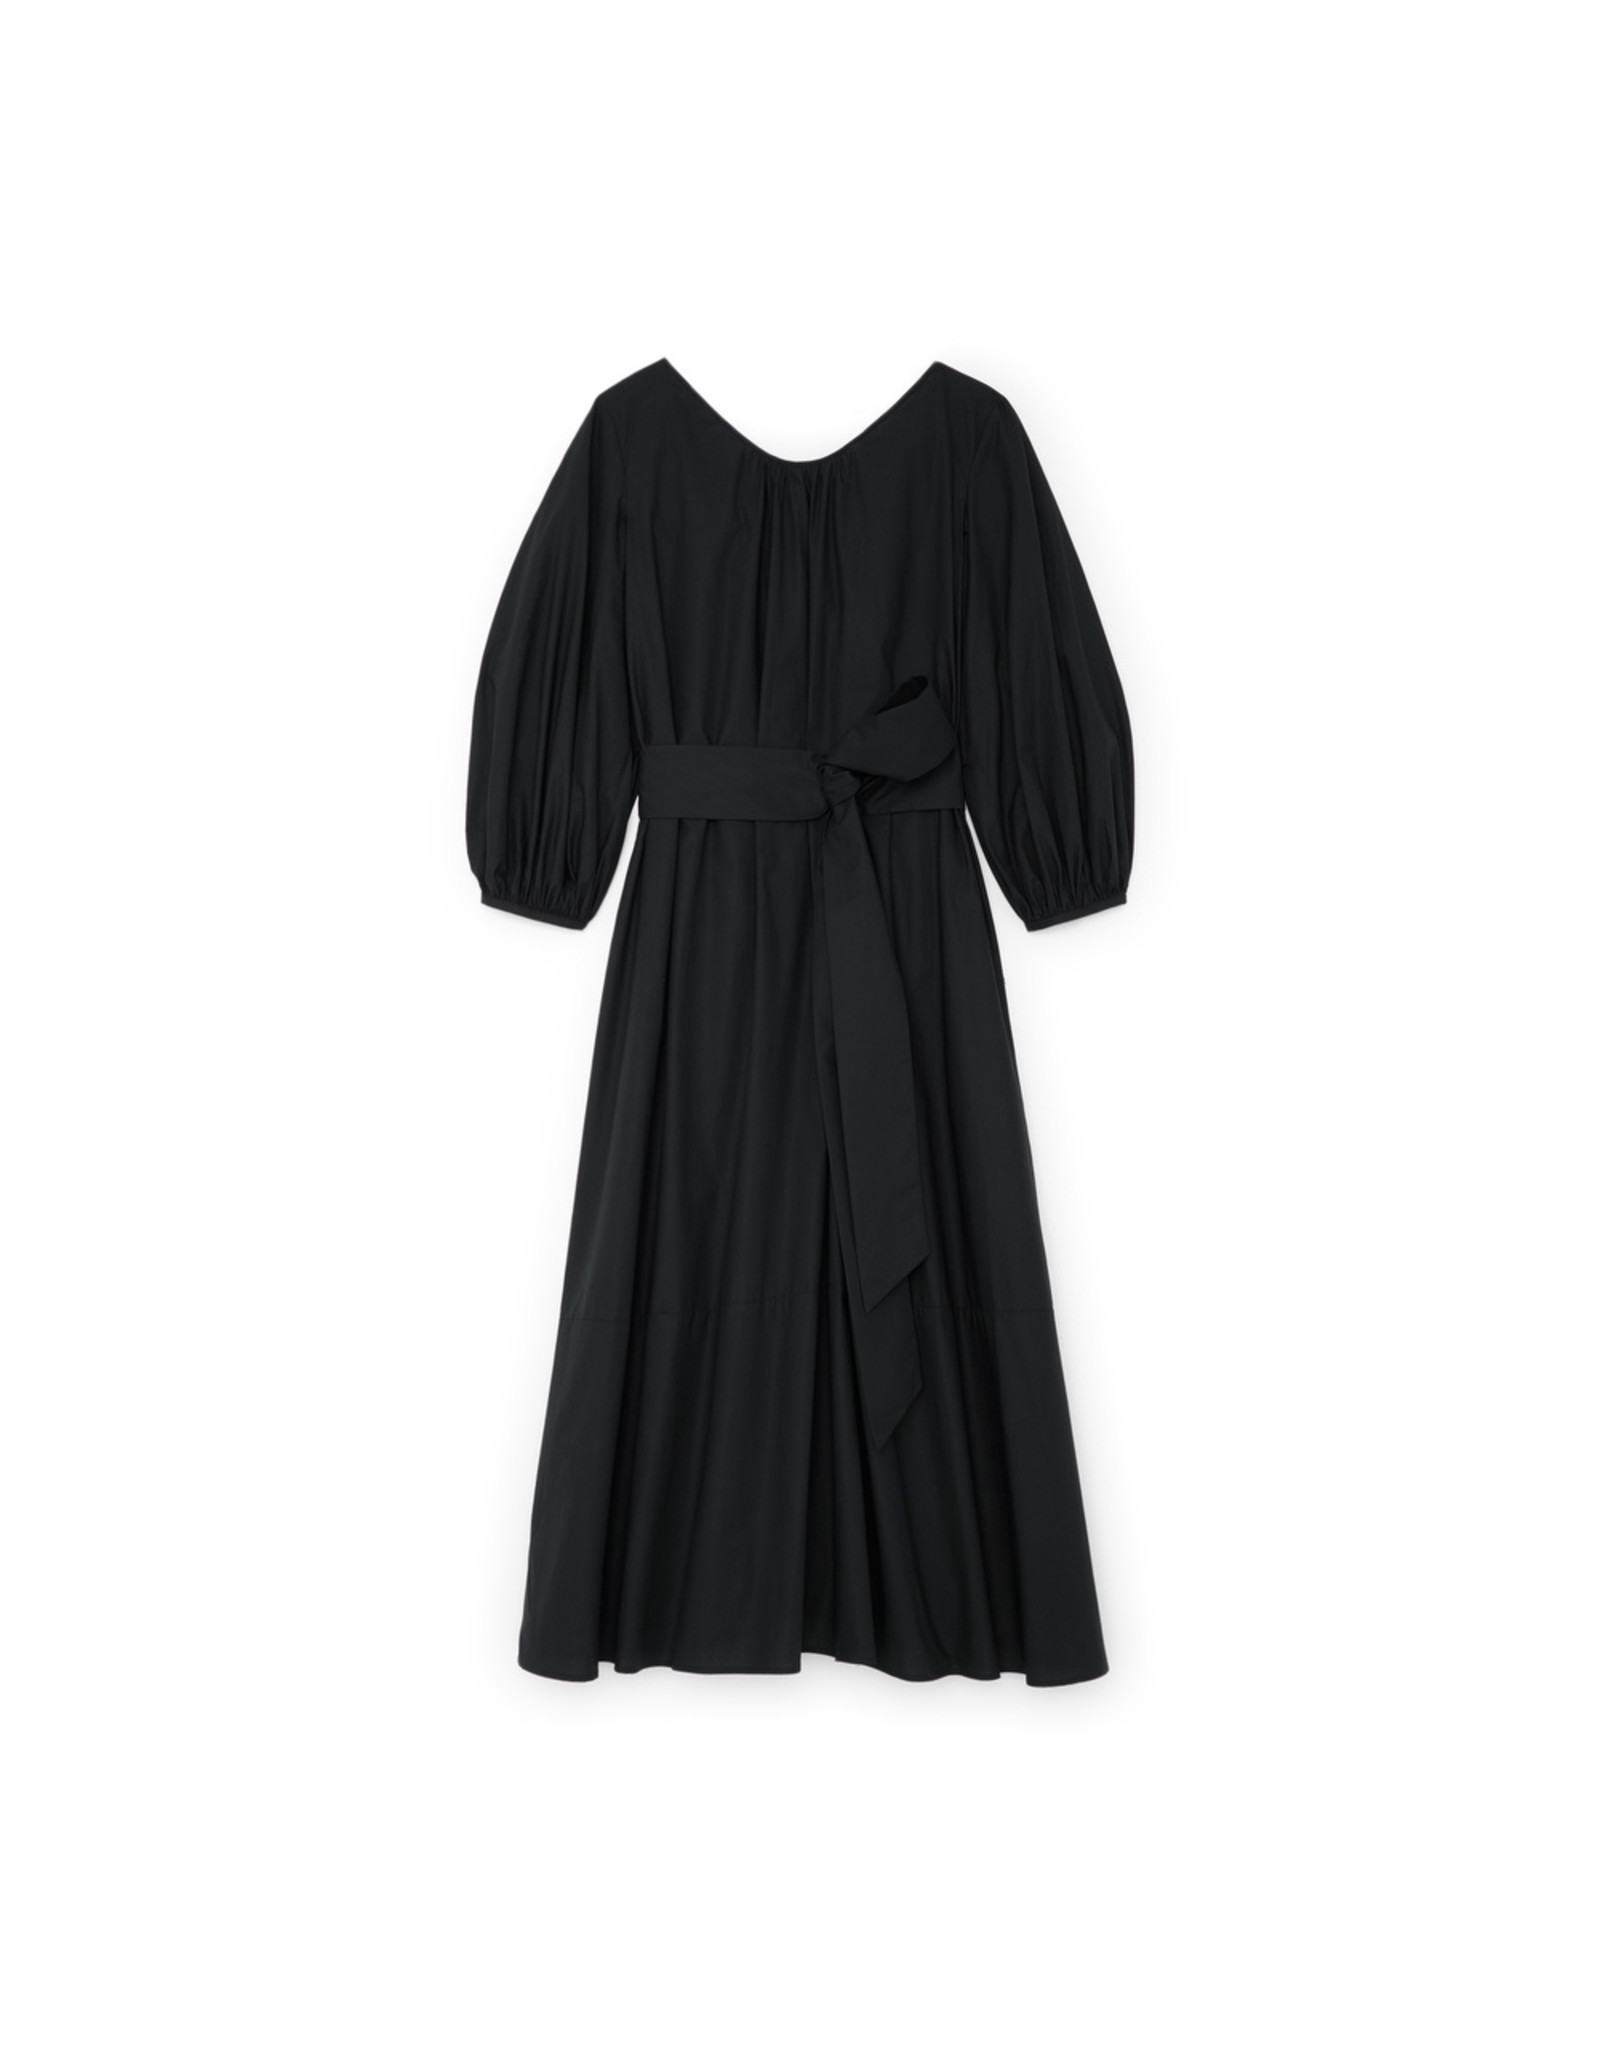 G. Label G. Label Amagansett Maxi Dress (Color: Black, Size: L)